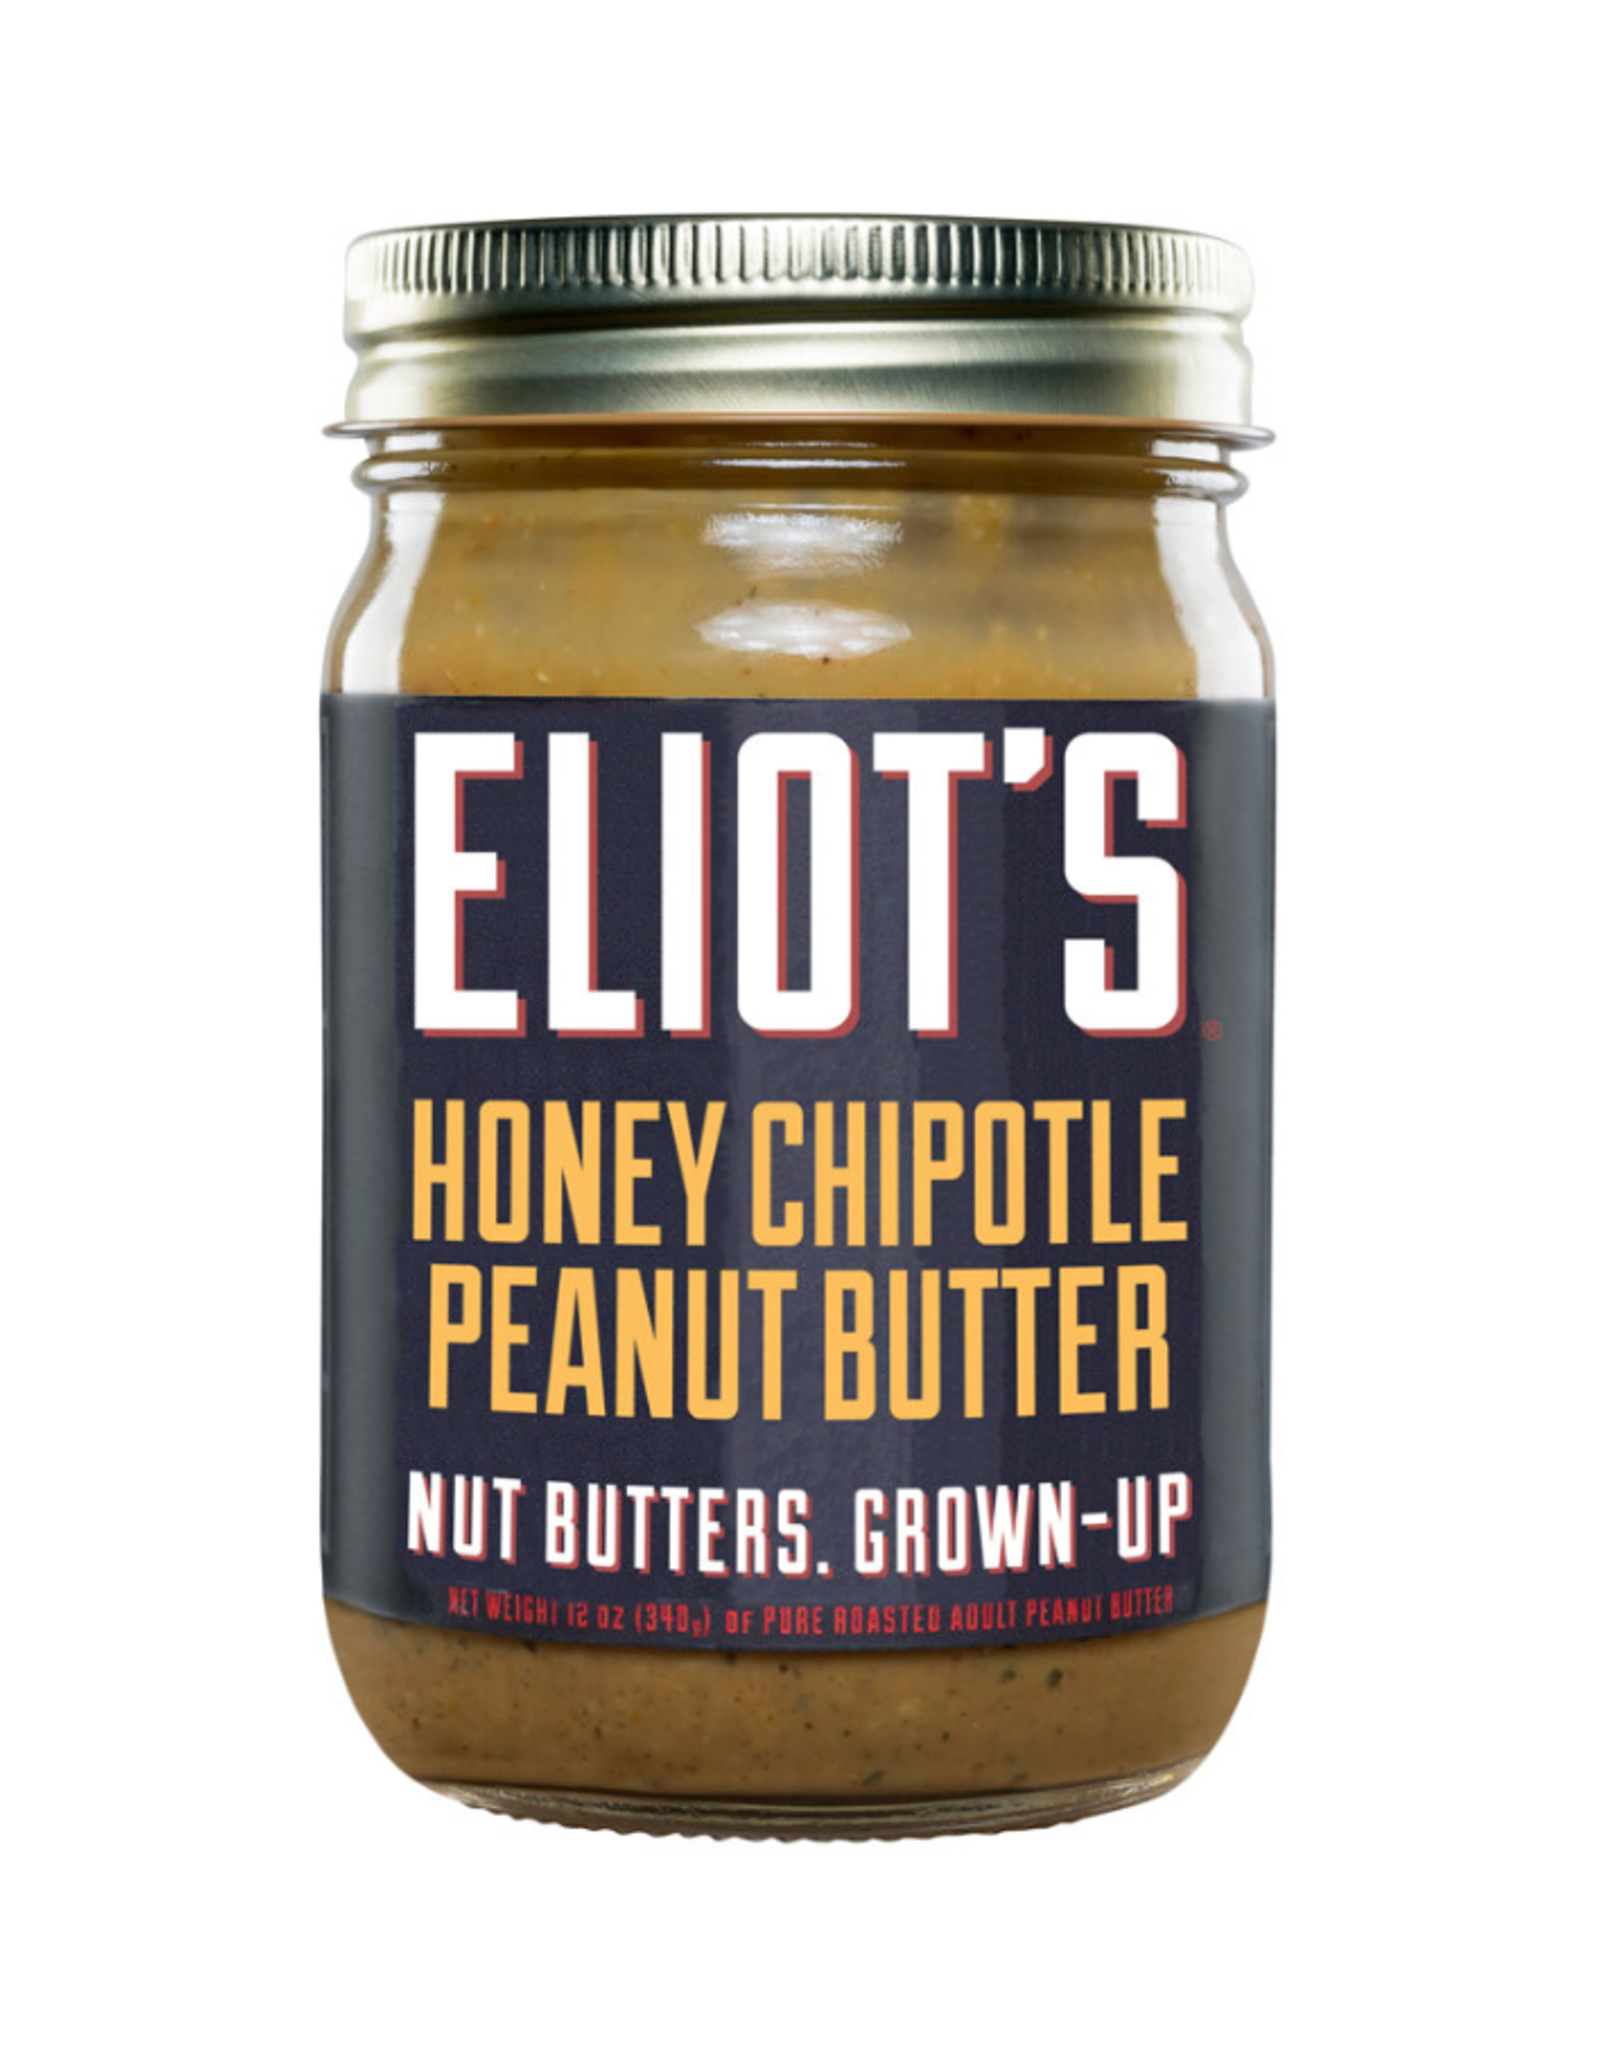 Eliot's Nut Butters Honey Chipotle Peanut Butter